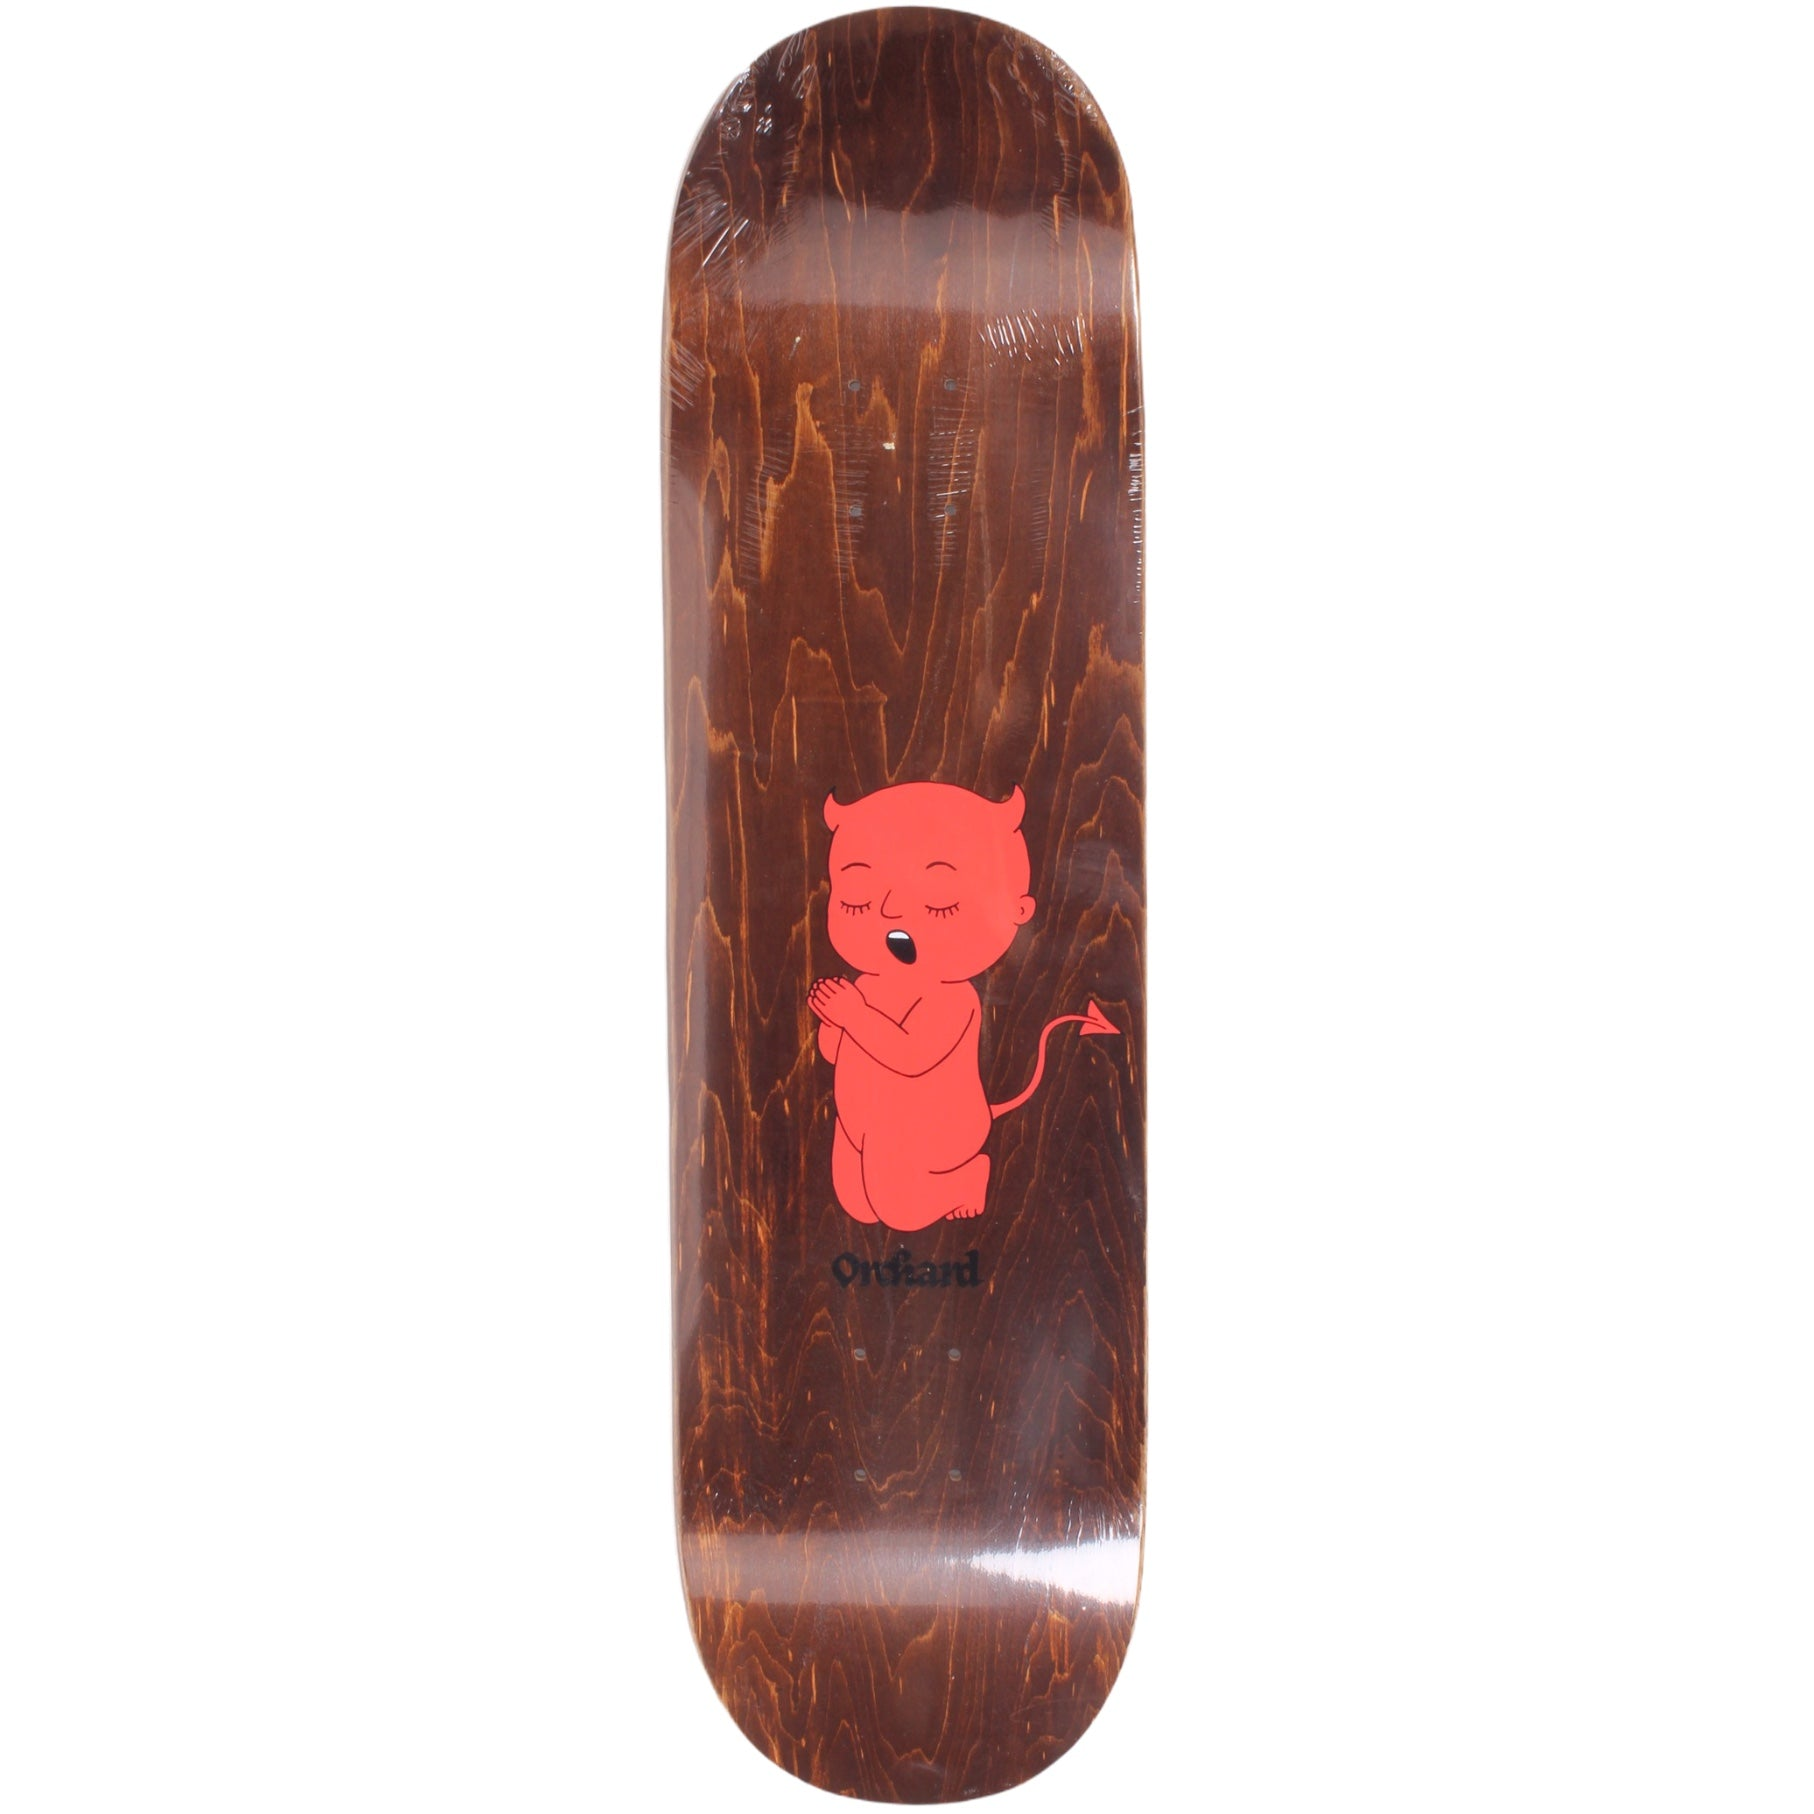 Orchard Thoughts & Prayers Deck 8.25""